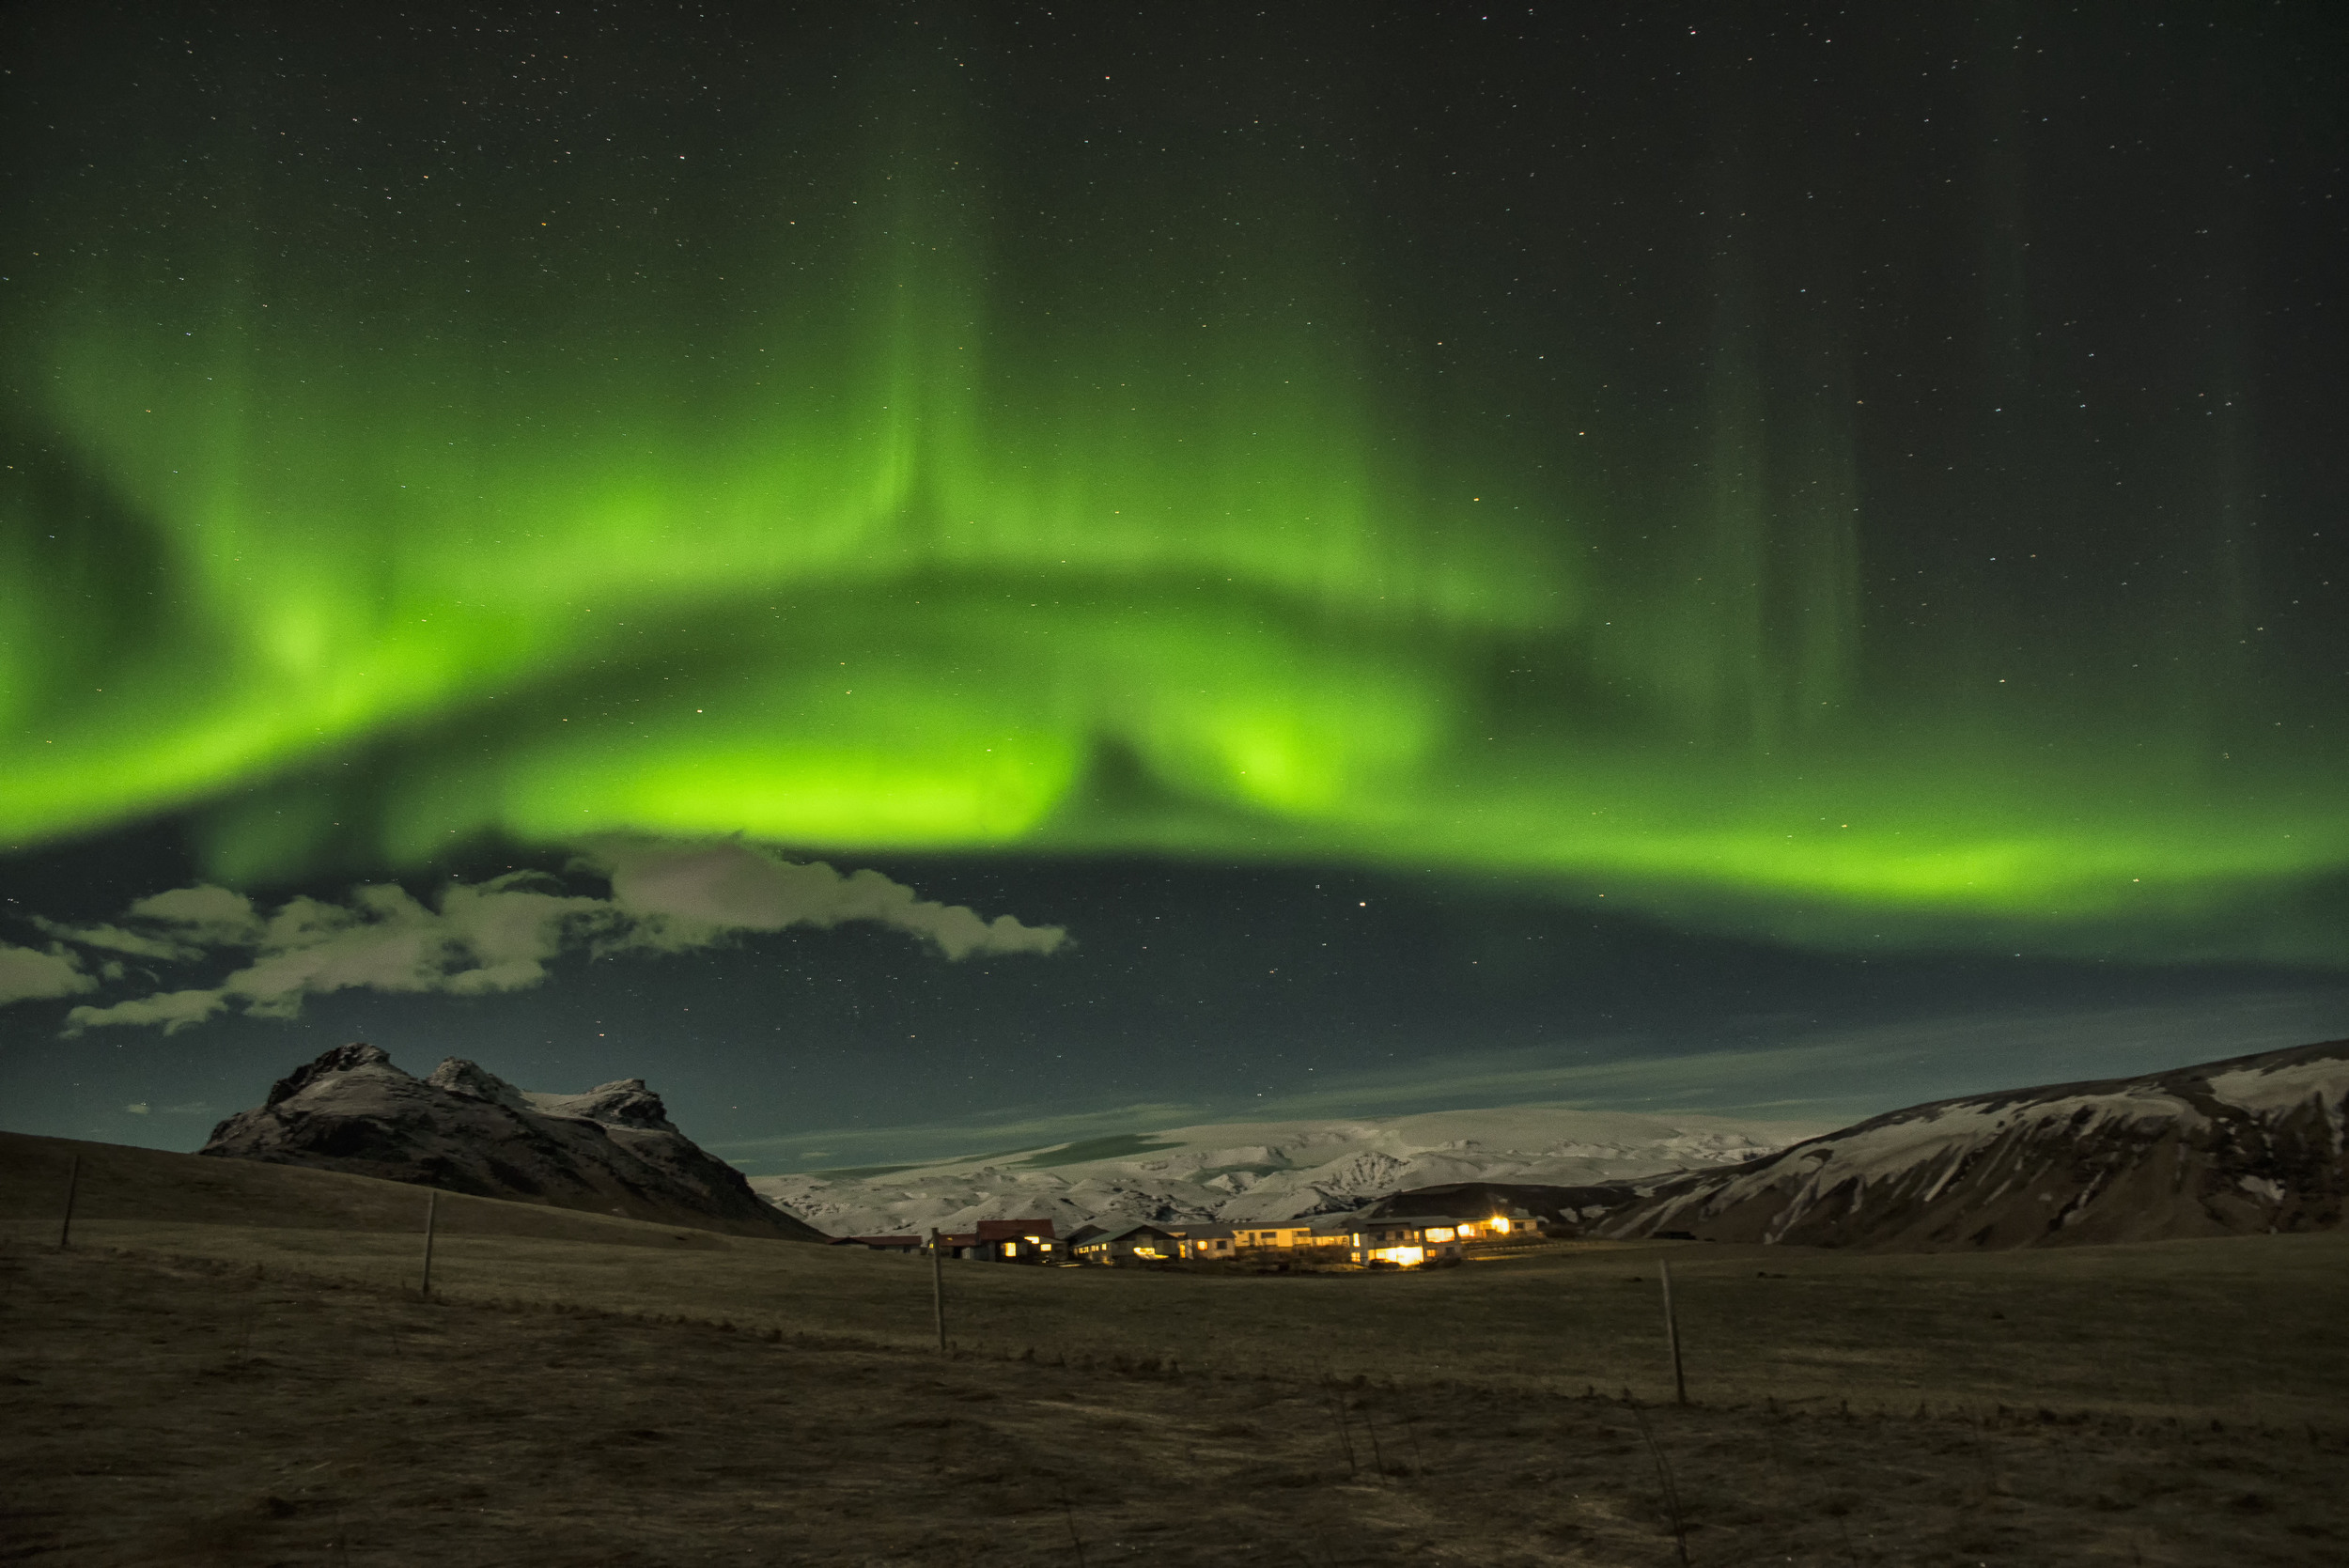 The+Northern+Lights+(or+Aurora+Borealis).jpg